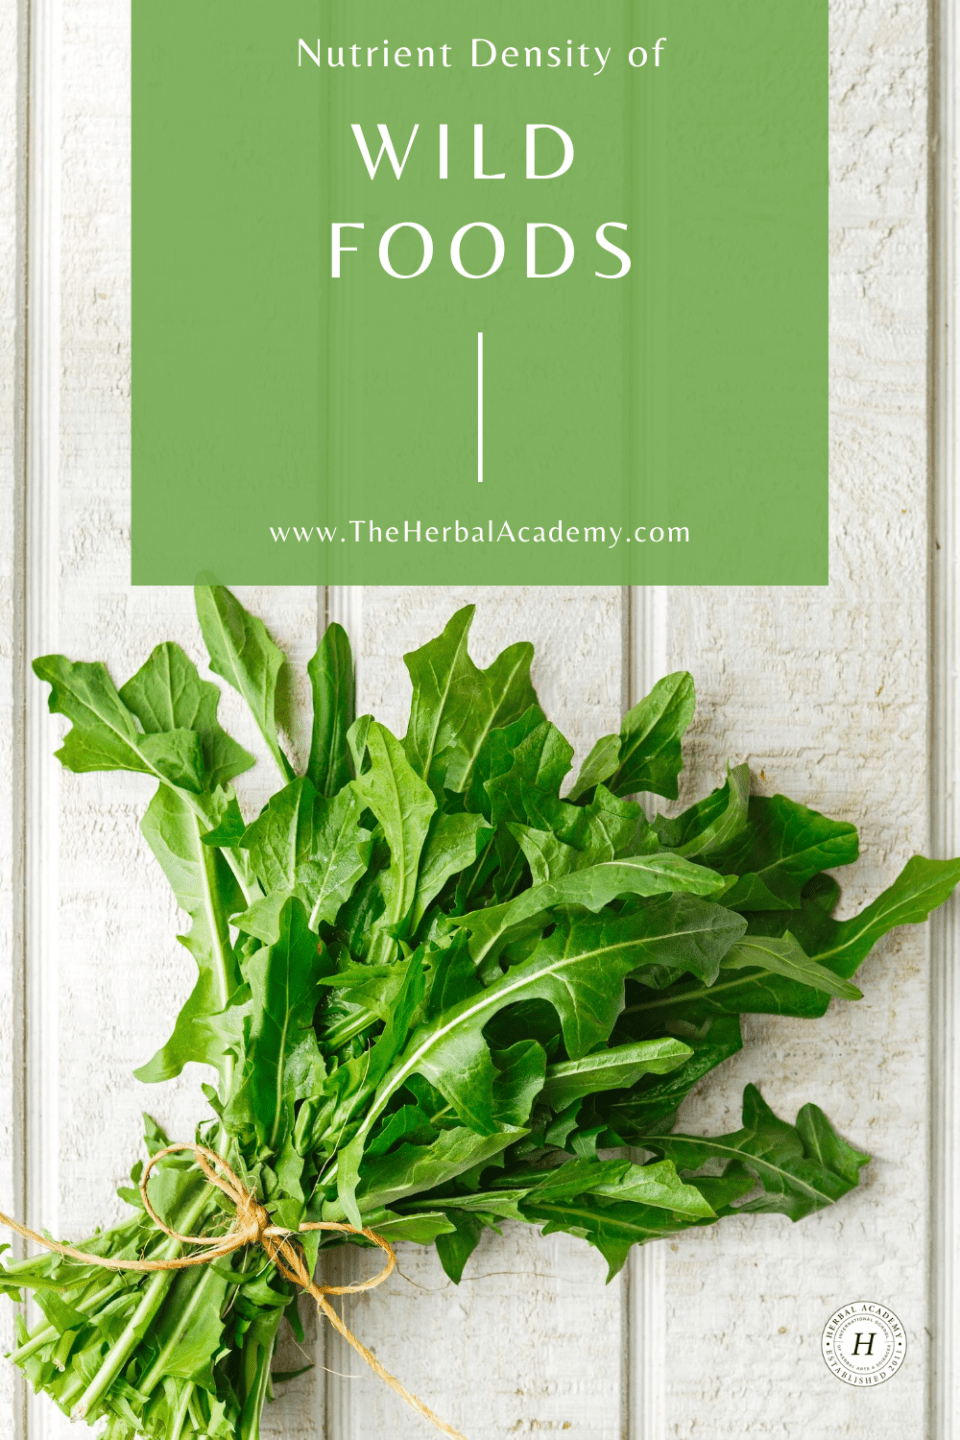 A Foraged Feast: Nutritional Value of Edible Wild Food | Herbal Academy | Learn about the nutritional density of edible wild food varieties, like dandelion, compared to their cultivated counterparts.